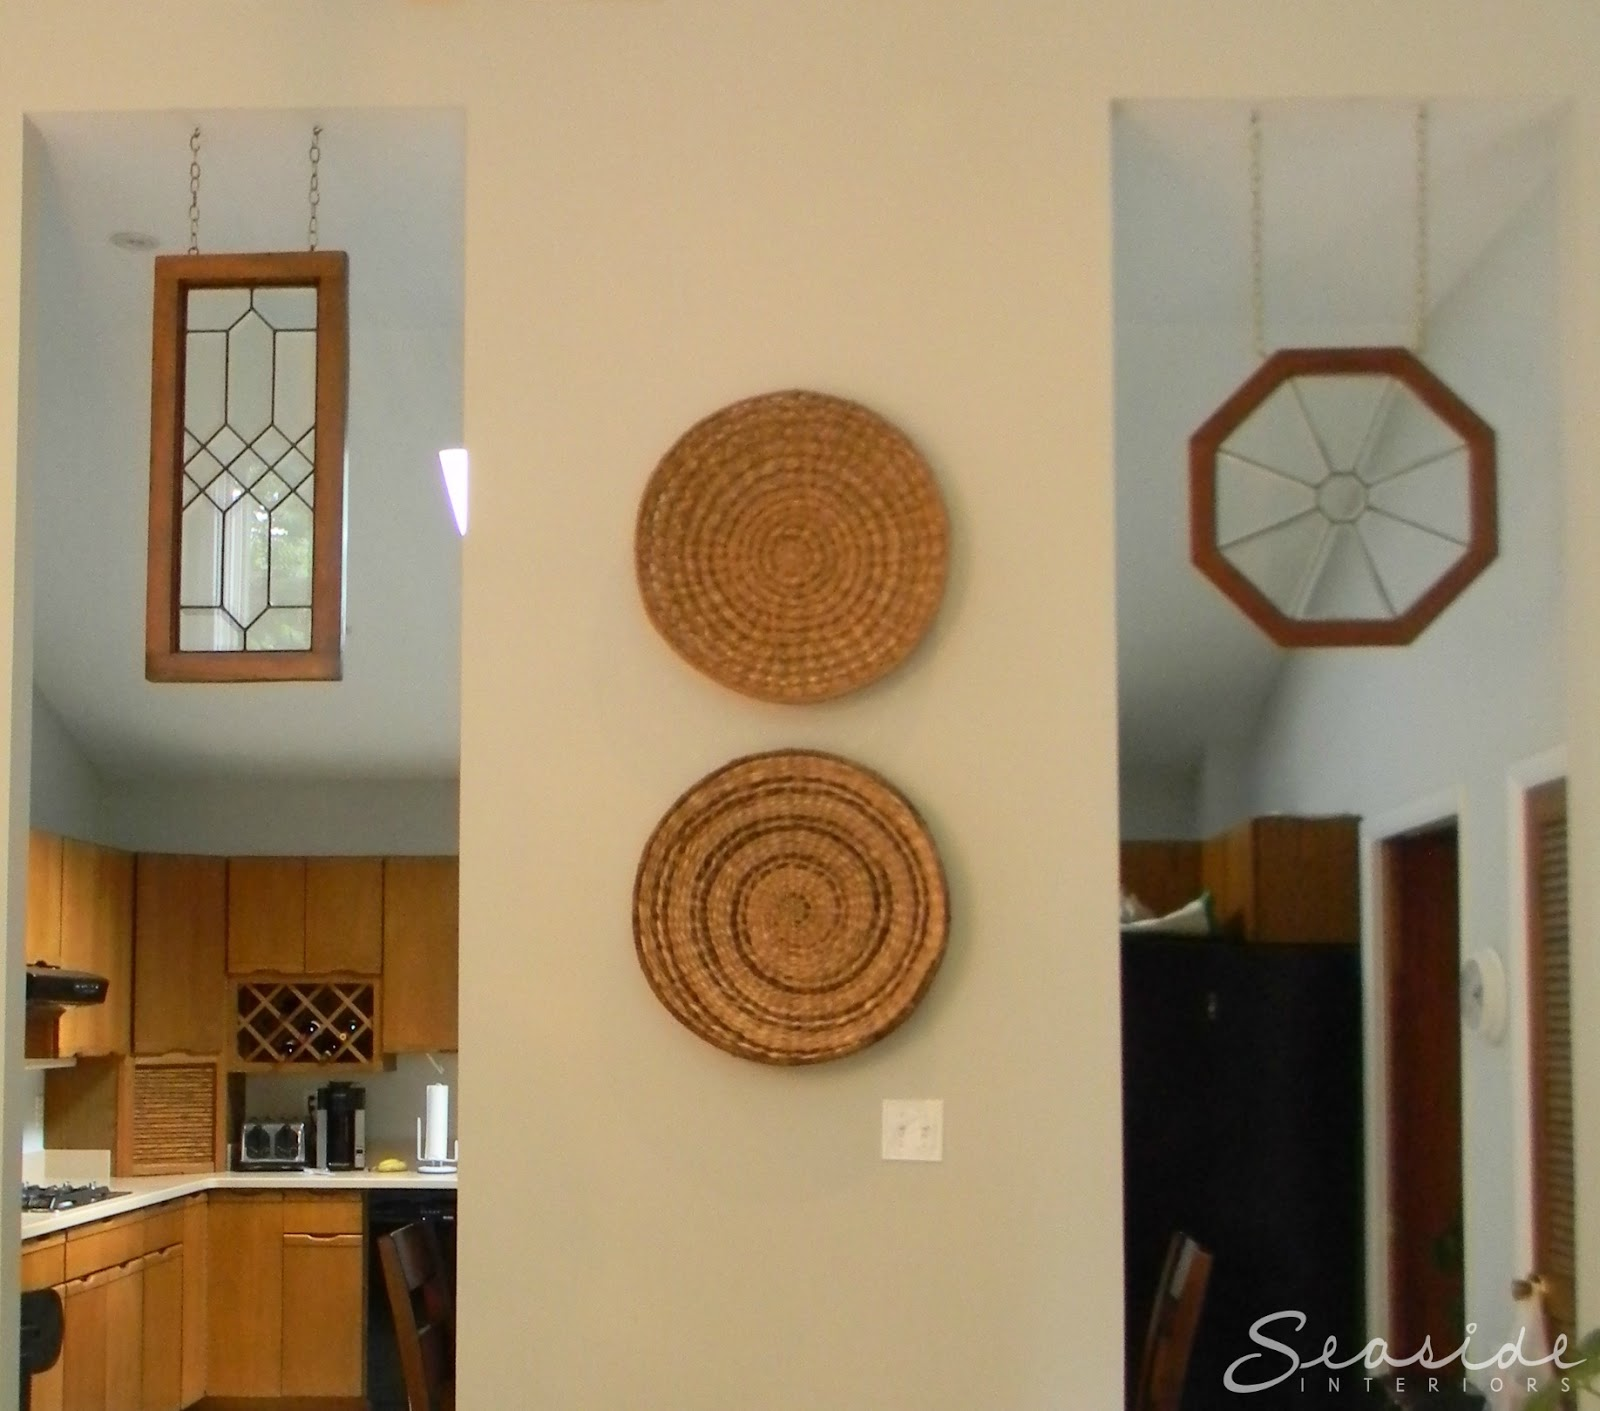 Seaside Interiors: Dining Room Design Makeover using the CB2 Firefly ...